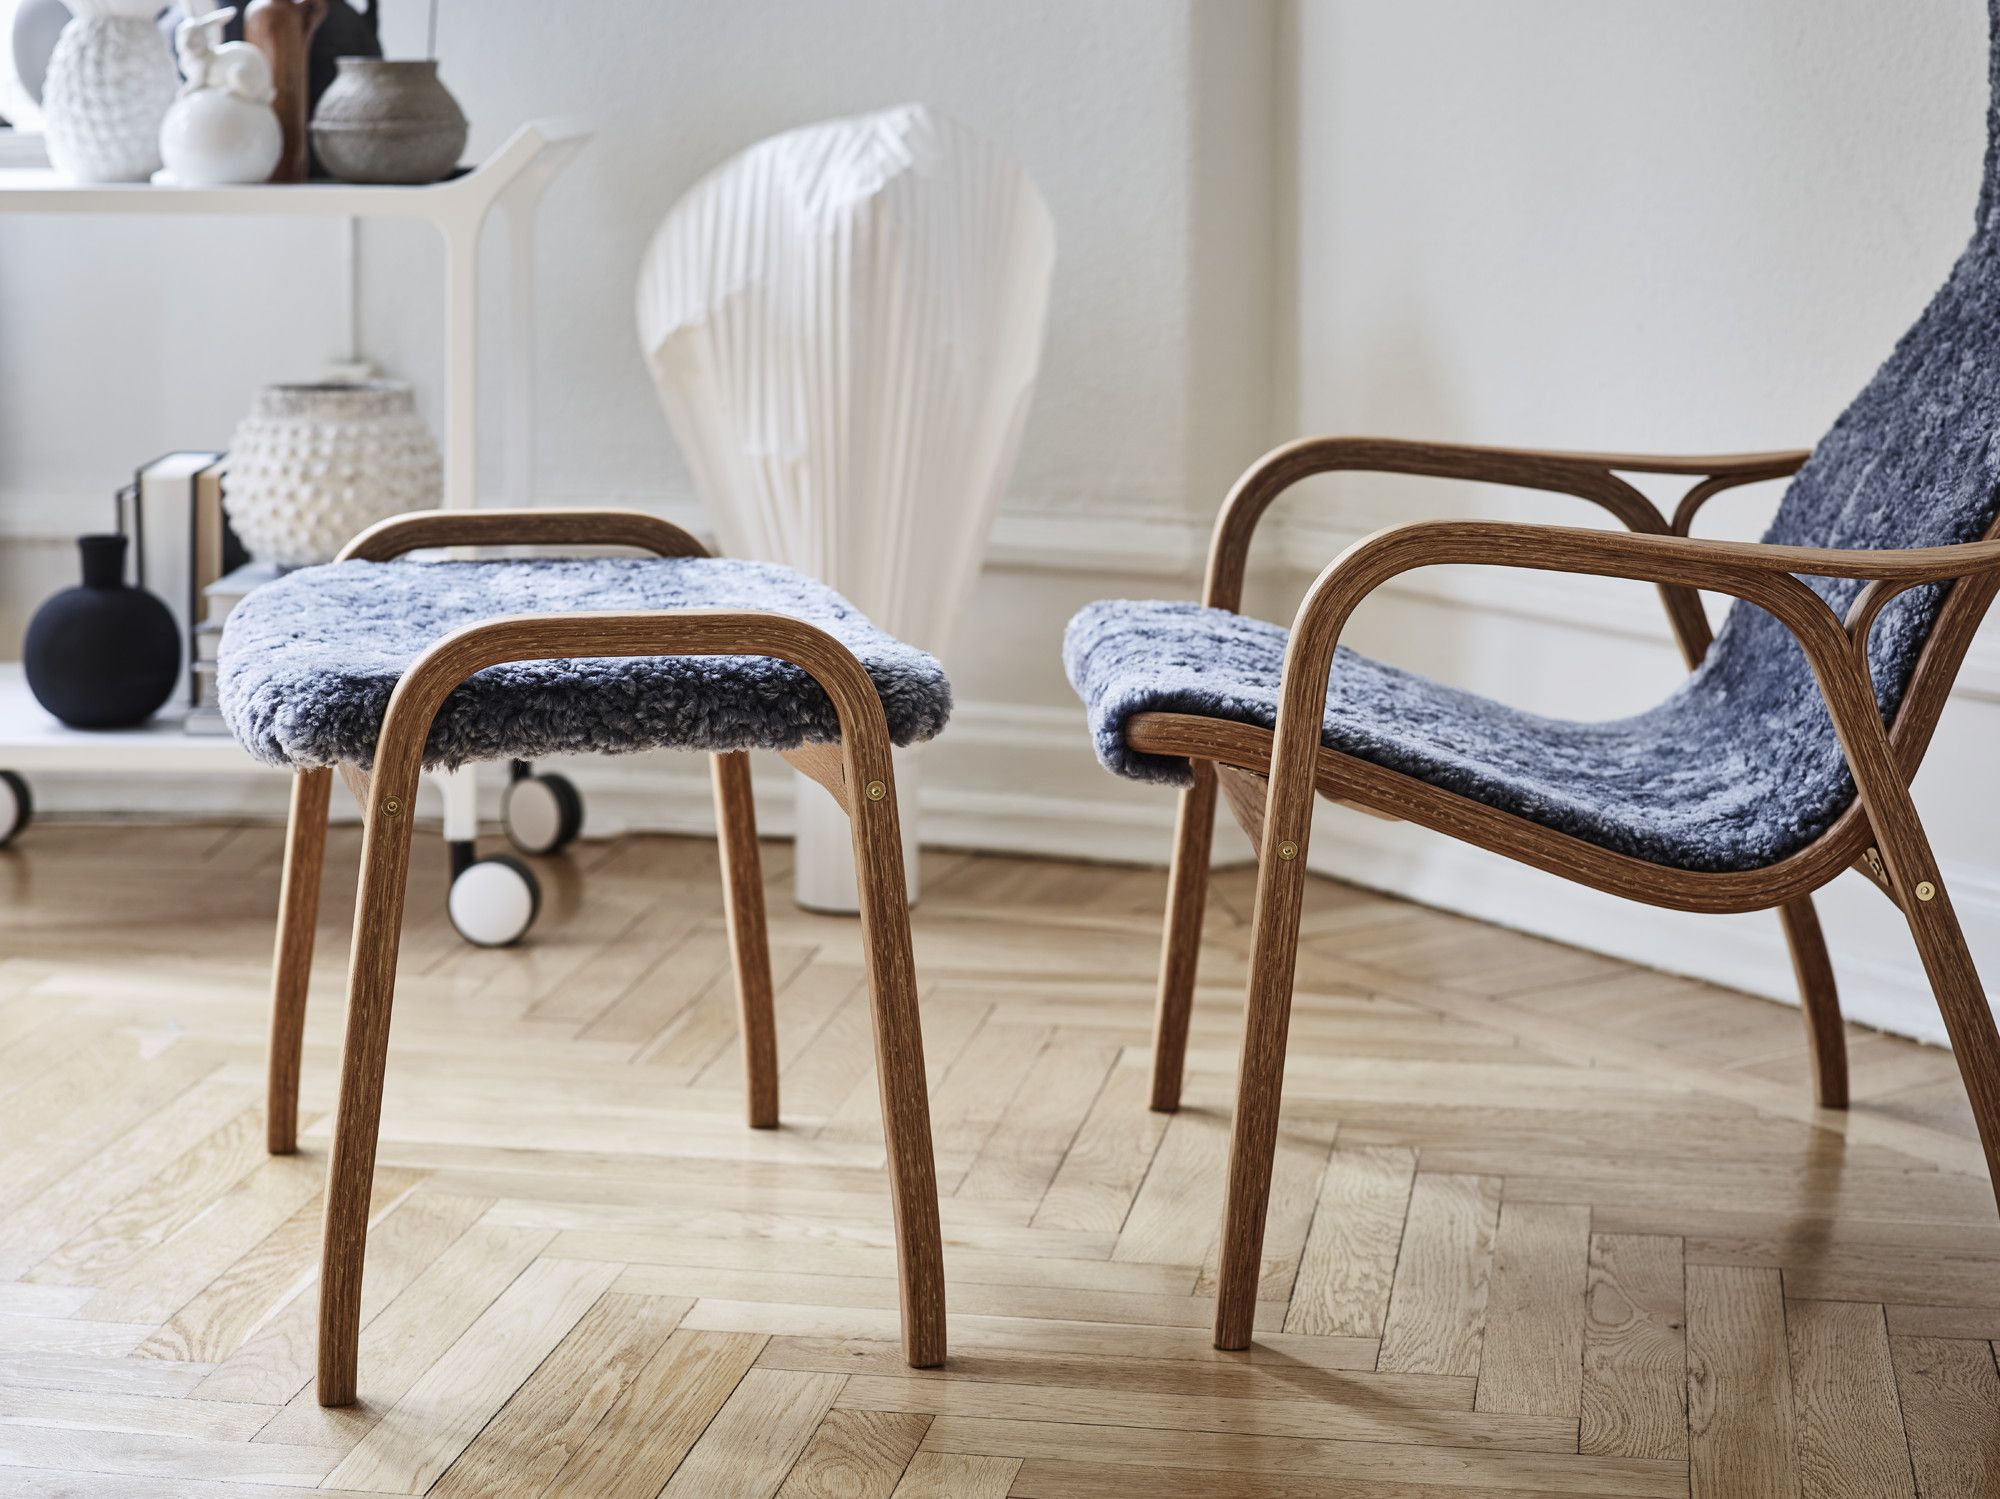 Lamino is a prime example of timeless design. Nature's own materials and masterful craftsmanship have resulted in a piece of furniture as attractive today as it'll be for future generations. When Yngve Ekström designed the chair in 1956, he did it with the human being in focus, which makes it as pleasant to sit in as it is to look at.